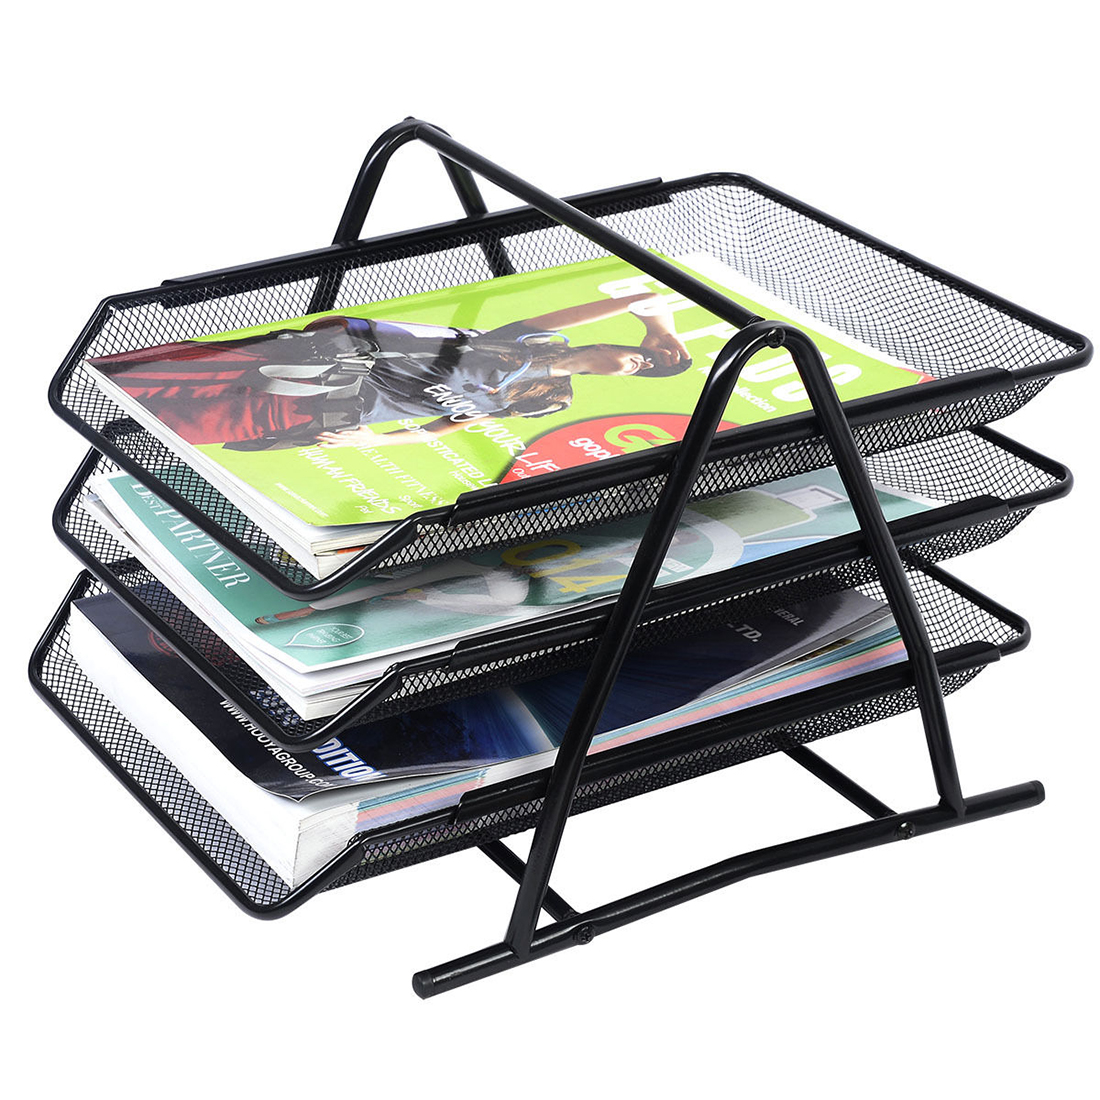 Mesh Letter Sorter Mail Tray Desk Document Organizer Business Office Accessories Black